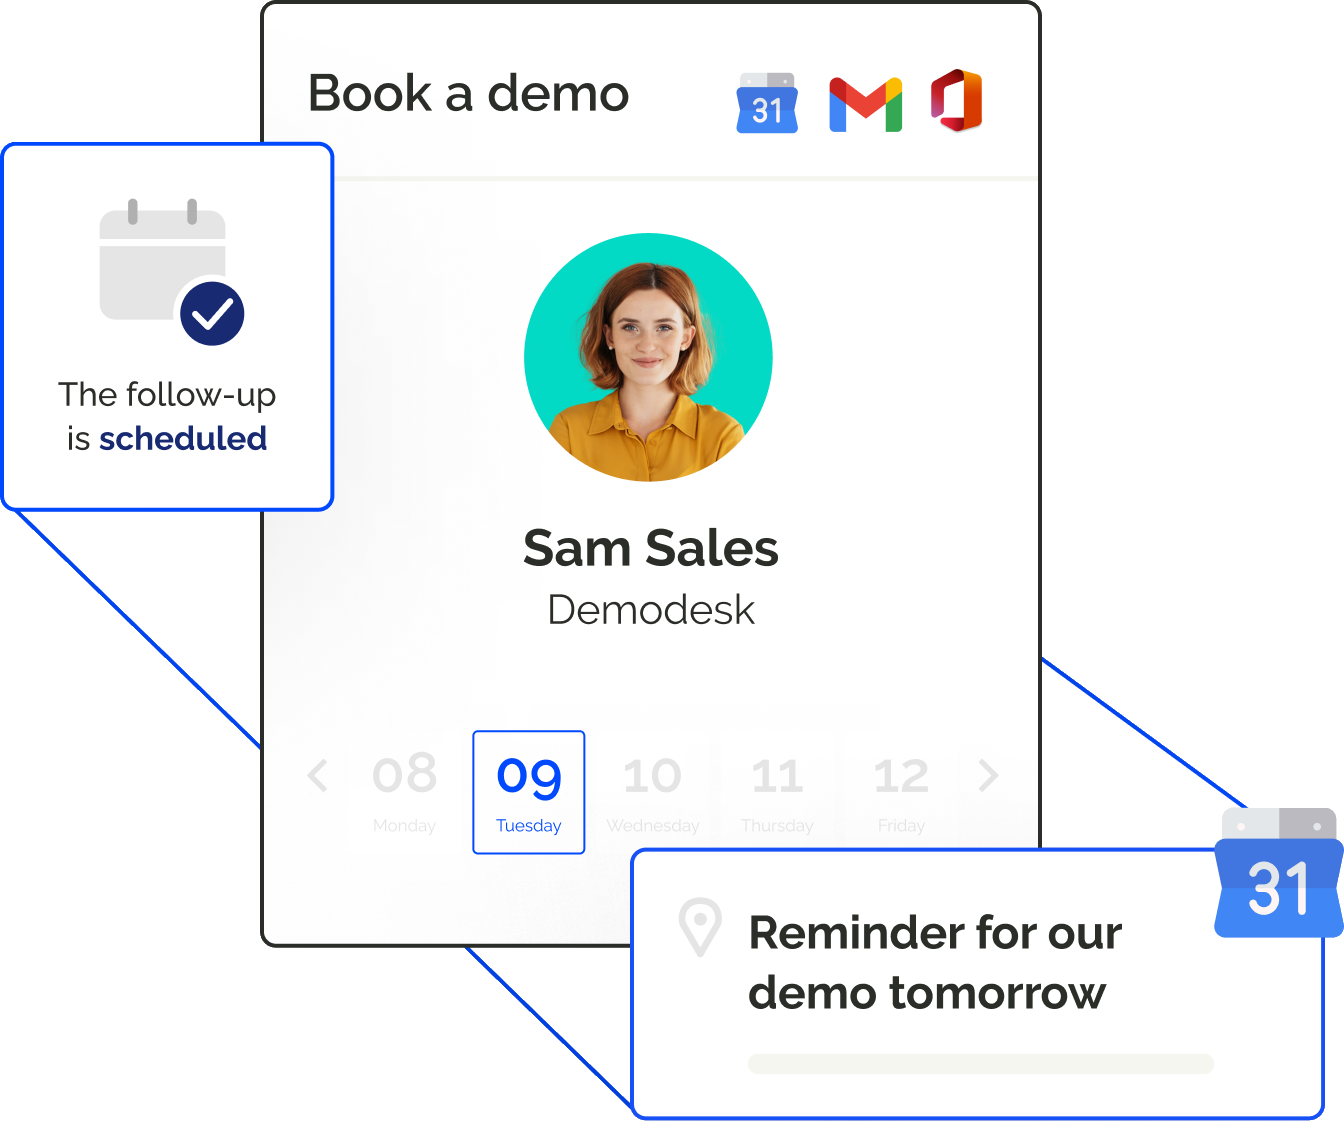 Let customers book meetings in your calendar, based on your availability, and automate all meeting invites & reminders.